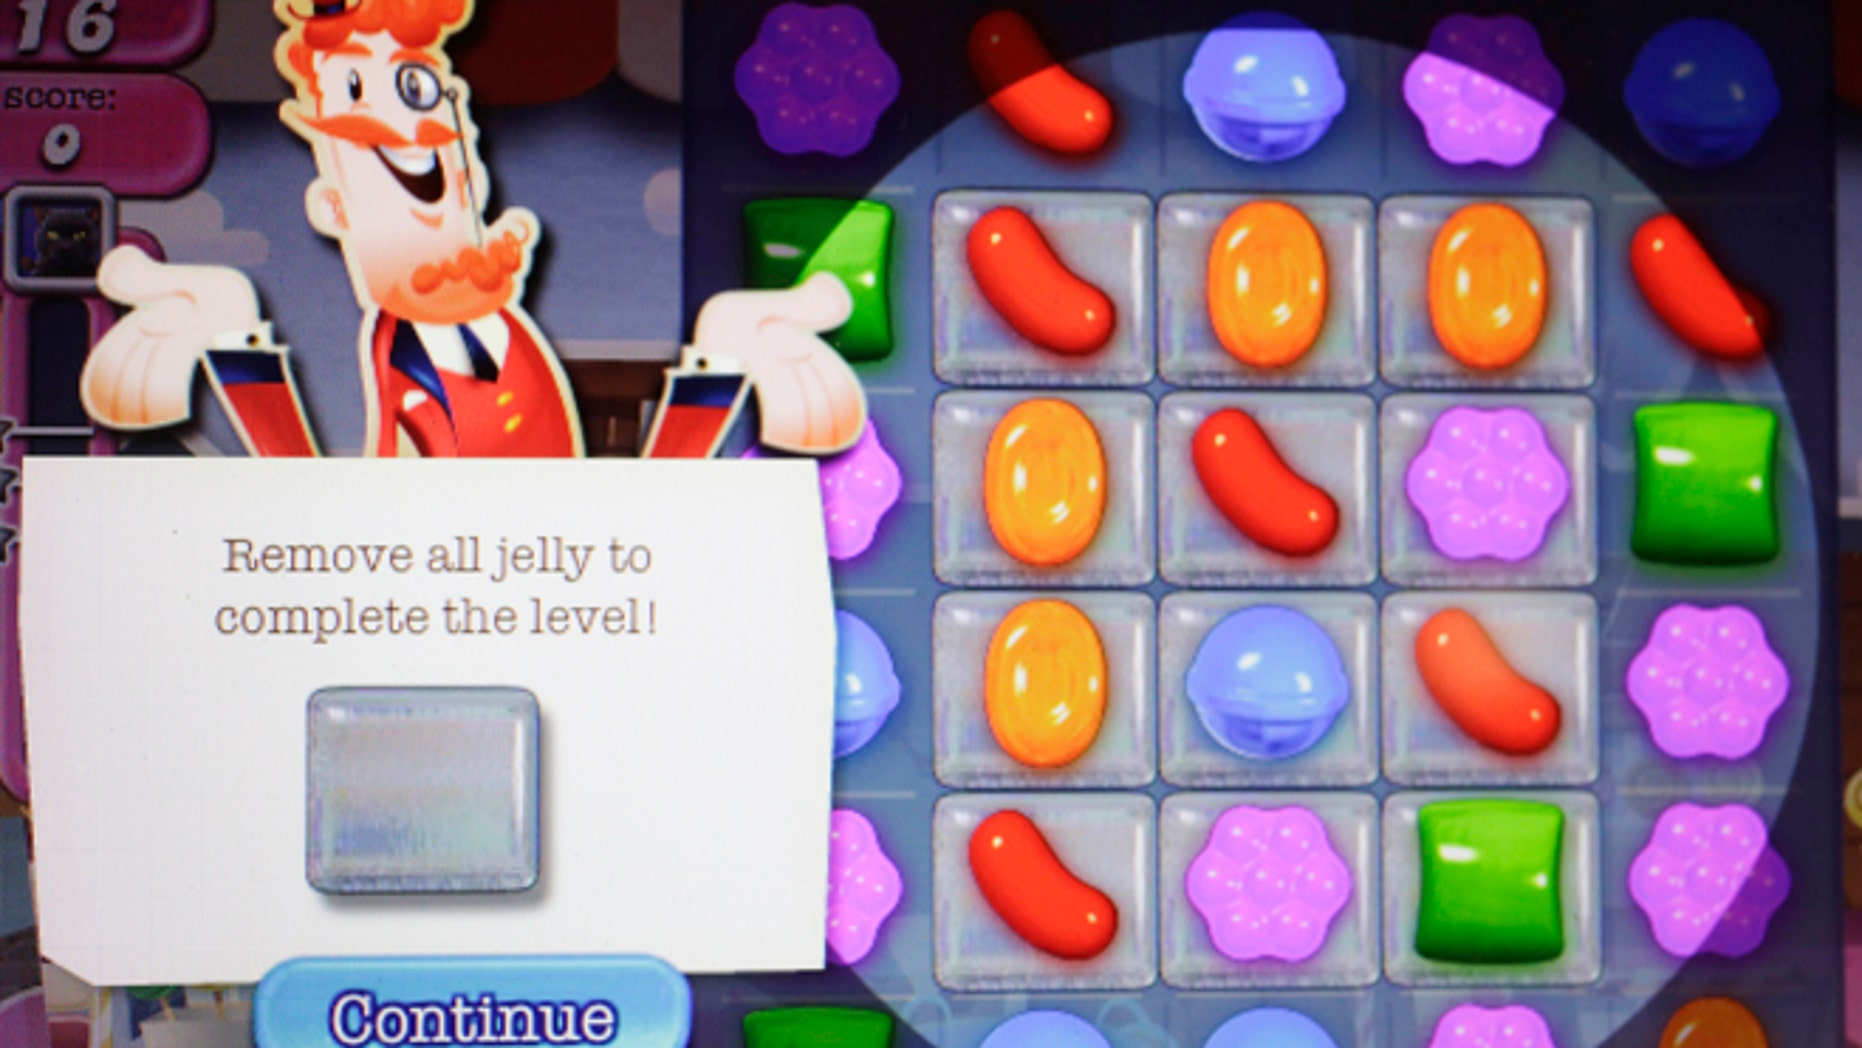 """FILE - In this March 24, 2014 file photo, a detail from the online game """"Candy Crush Saga"""" is shown on a computer screen in New York. King Digital Entertainment, the maker of the popular """"Candy Crush Saga"""" makes its stock market debut on Wednesday, March 26, 2014. (AP Photo/Mark Lennihan, File)"""